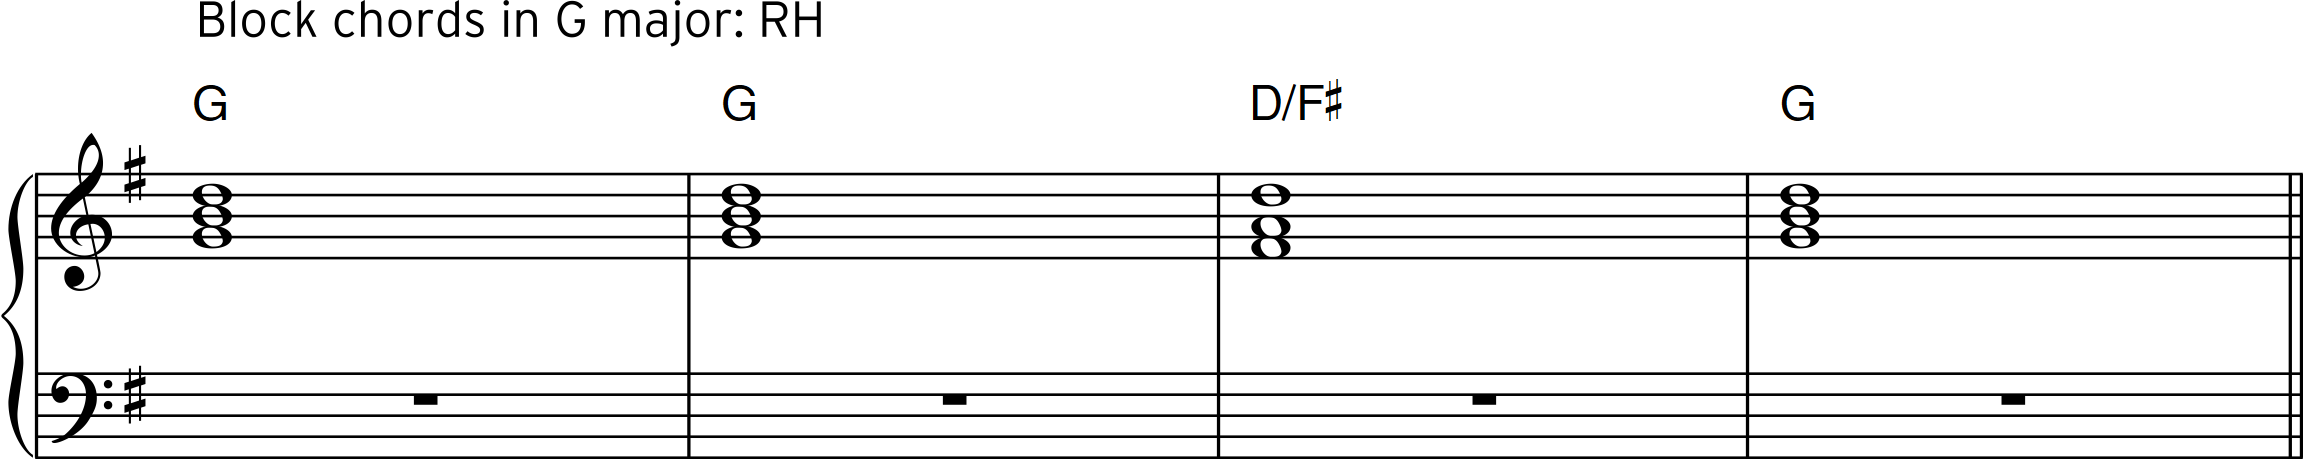 Fig 4 part 2 (4 bar sequence in G major RH) NEW